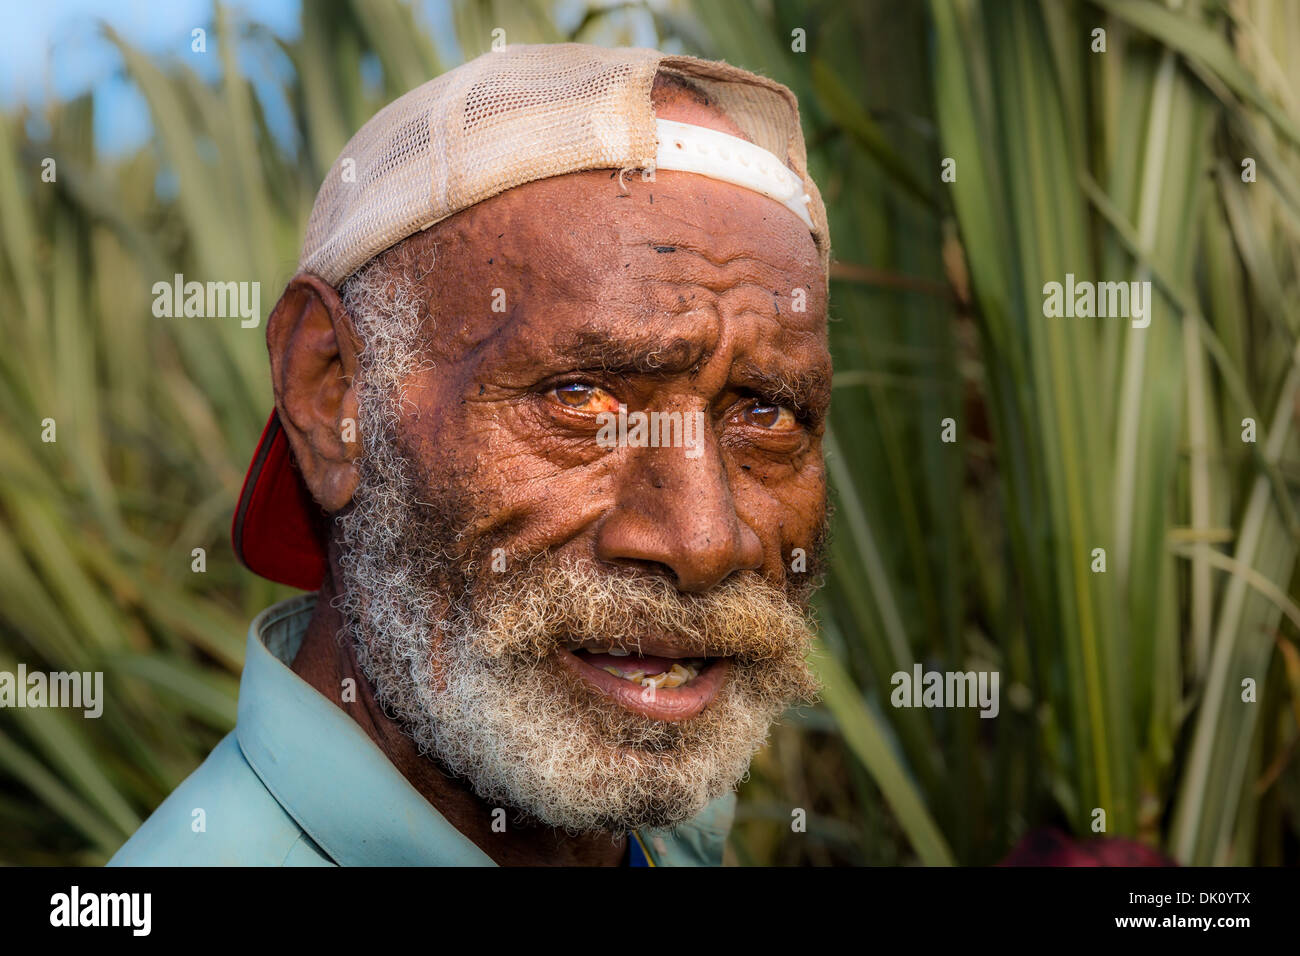 Farm worker on a field of sugar cane, Sigatoka, Viti Levu, Fiji, Oceania - Stock Image